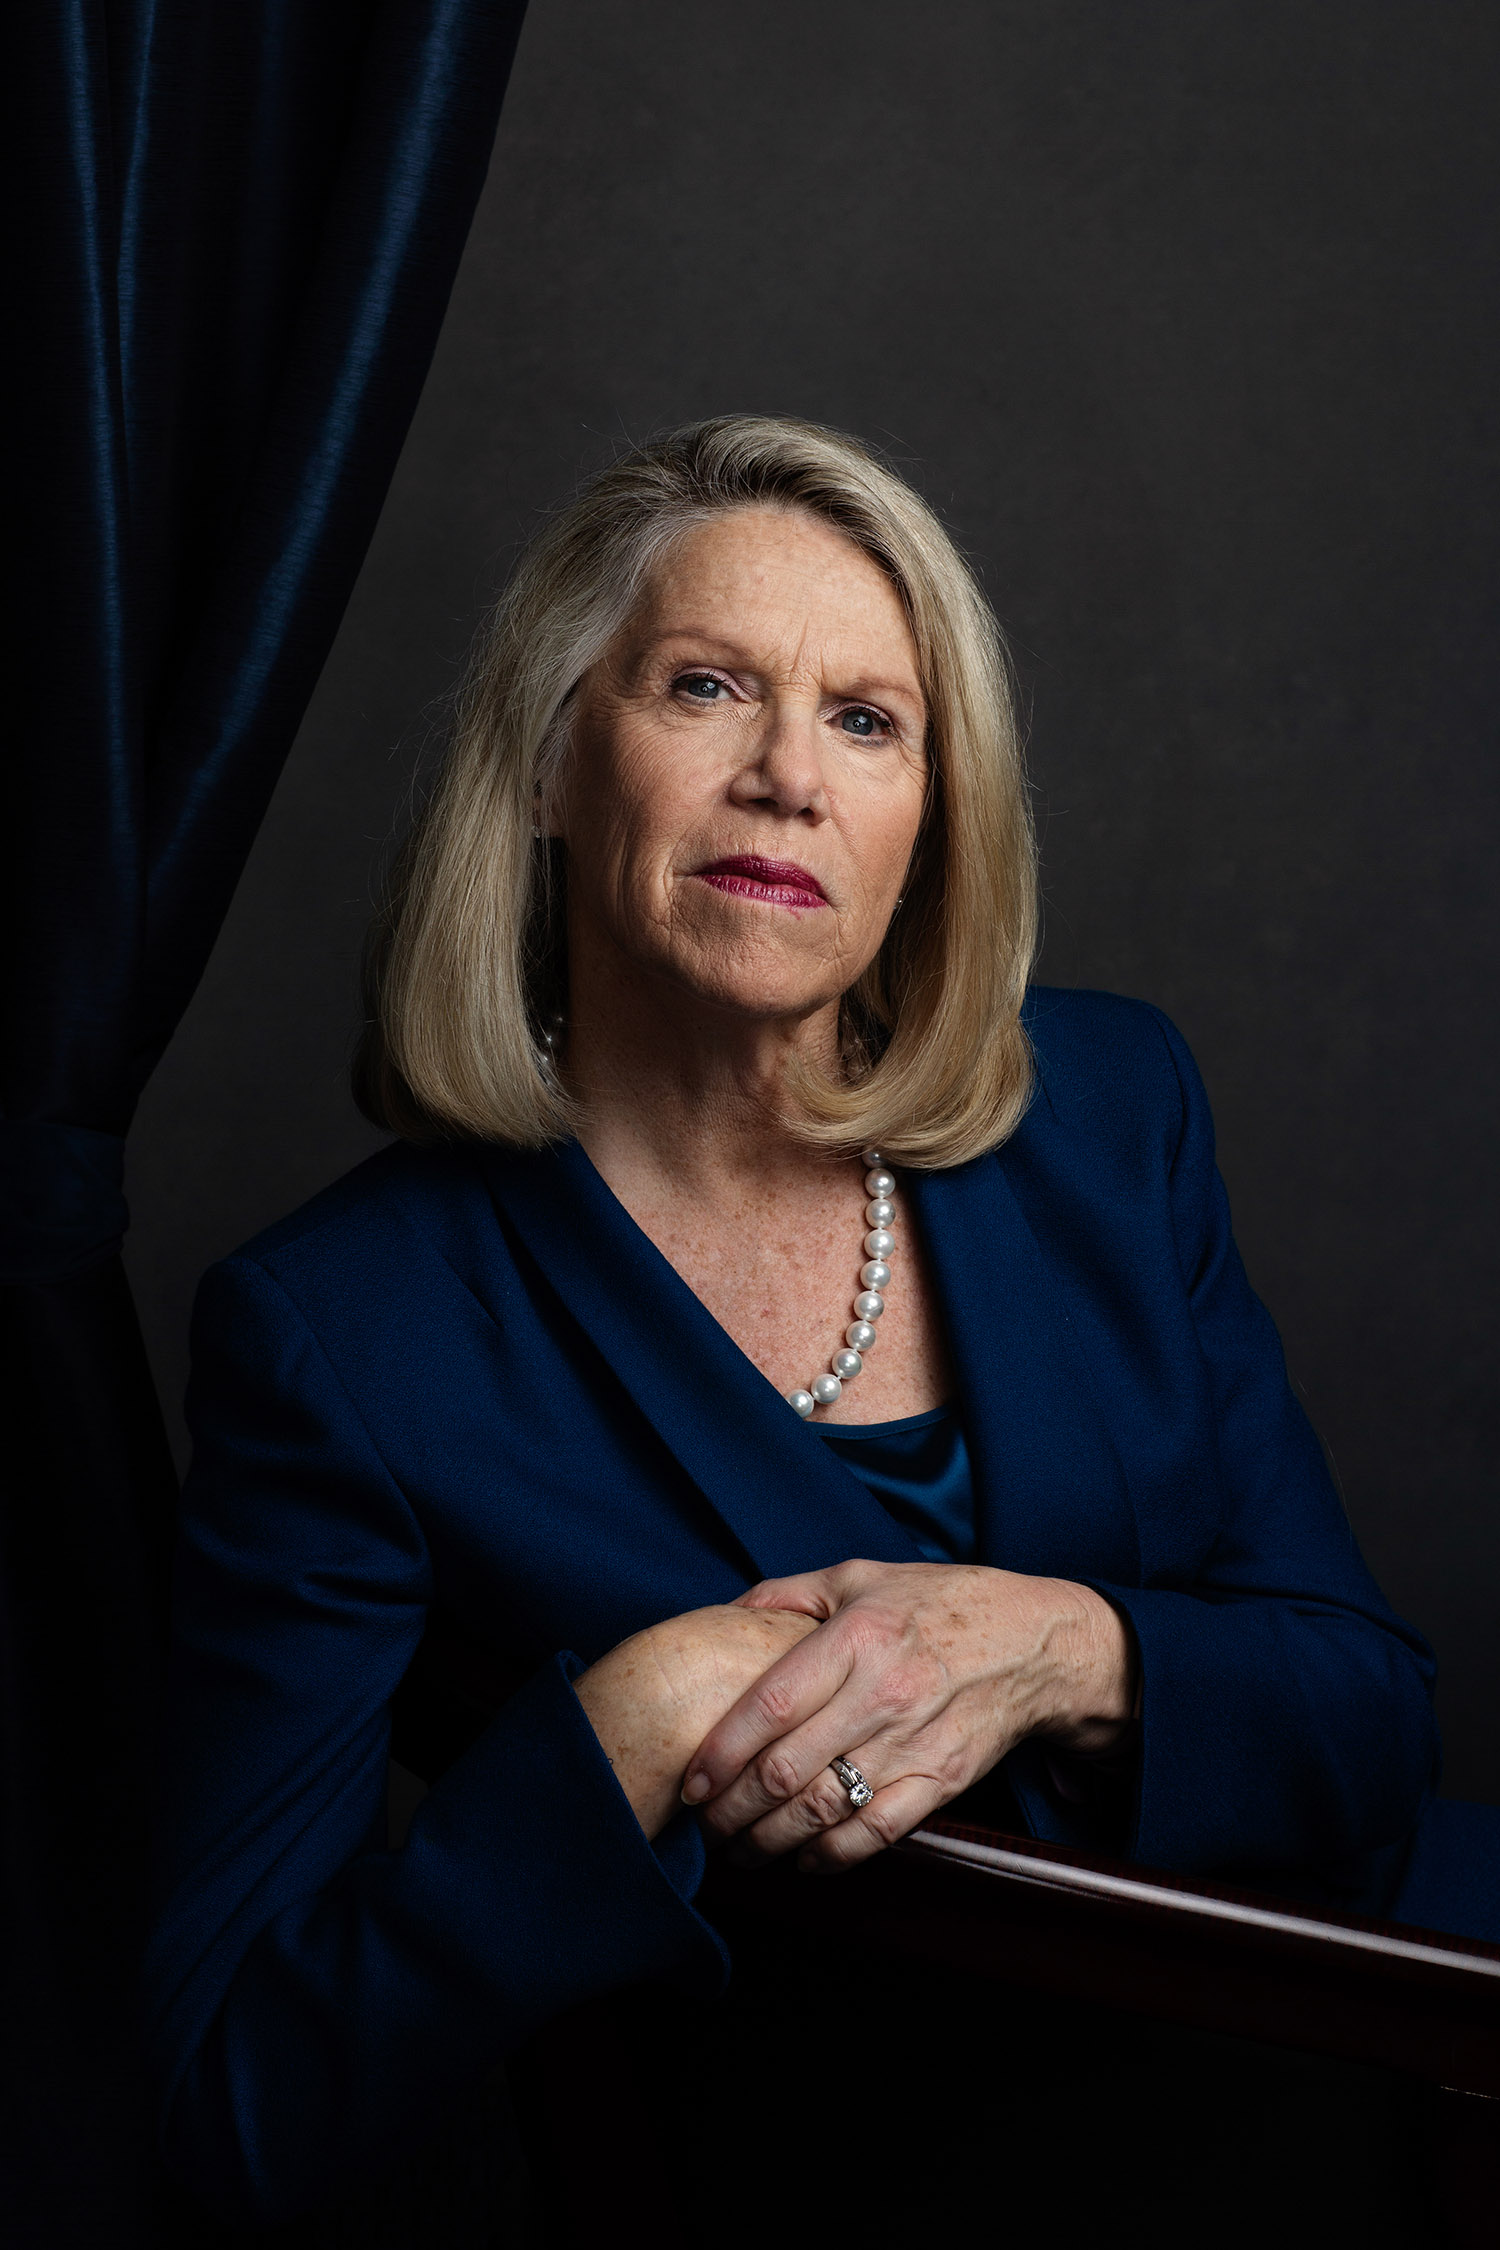 Carol Miller *****HOLD FOR WOMEN IN CONGRESS PROJECT****Carol Devine Miller is an American politician who is the representative in West Virginia's 3rd congressional district, serving since 2019. She is a member of the Republican Party.